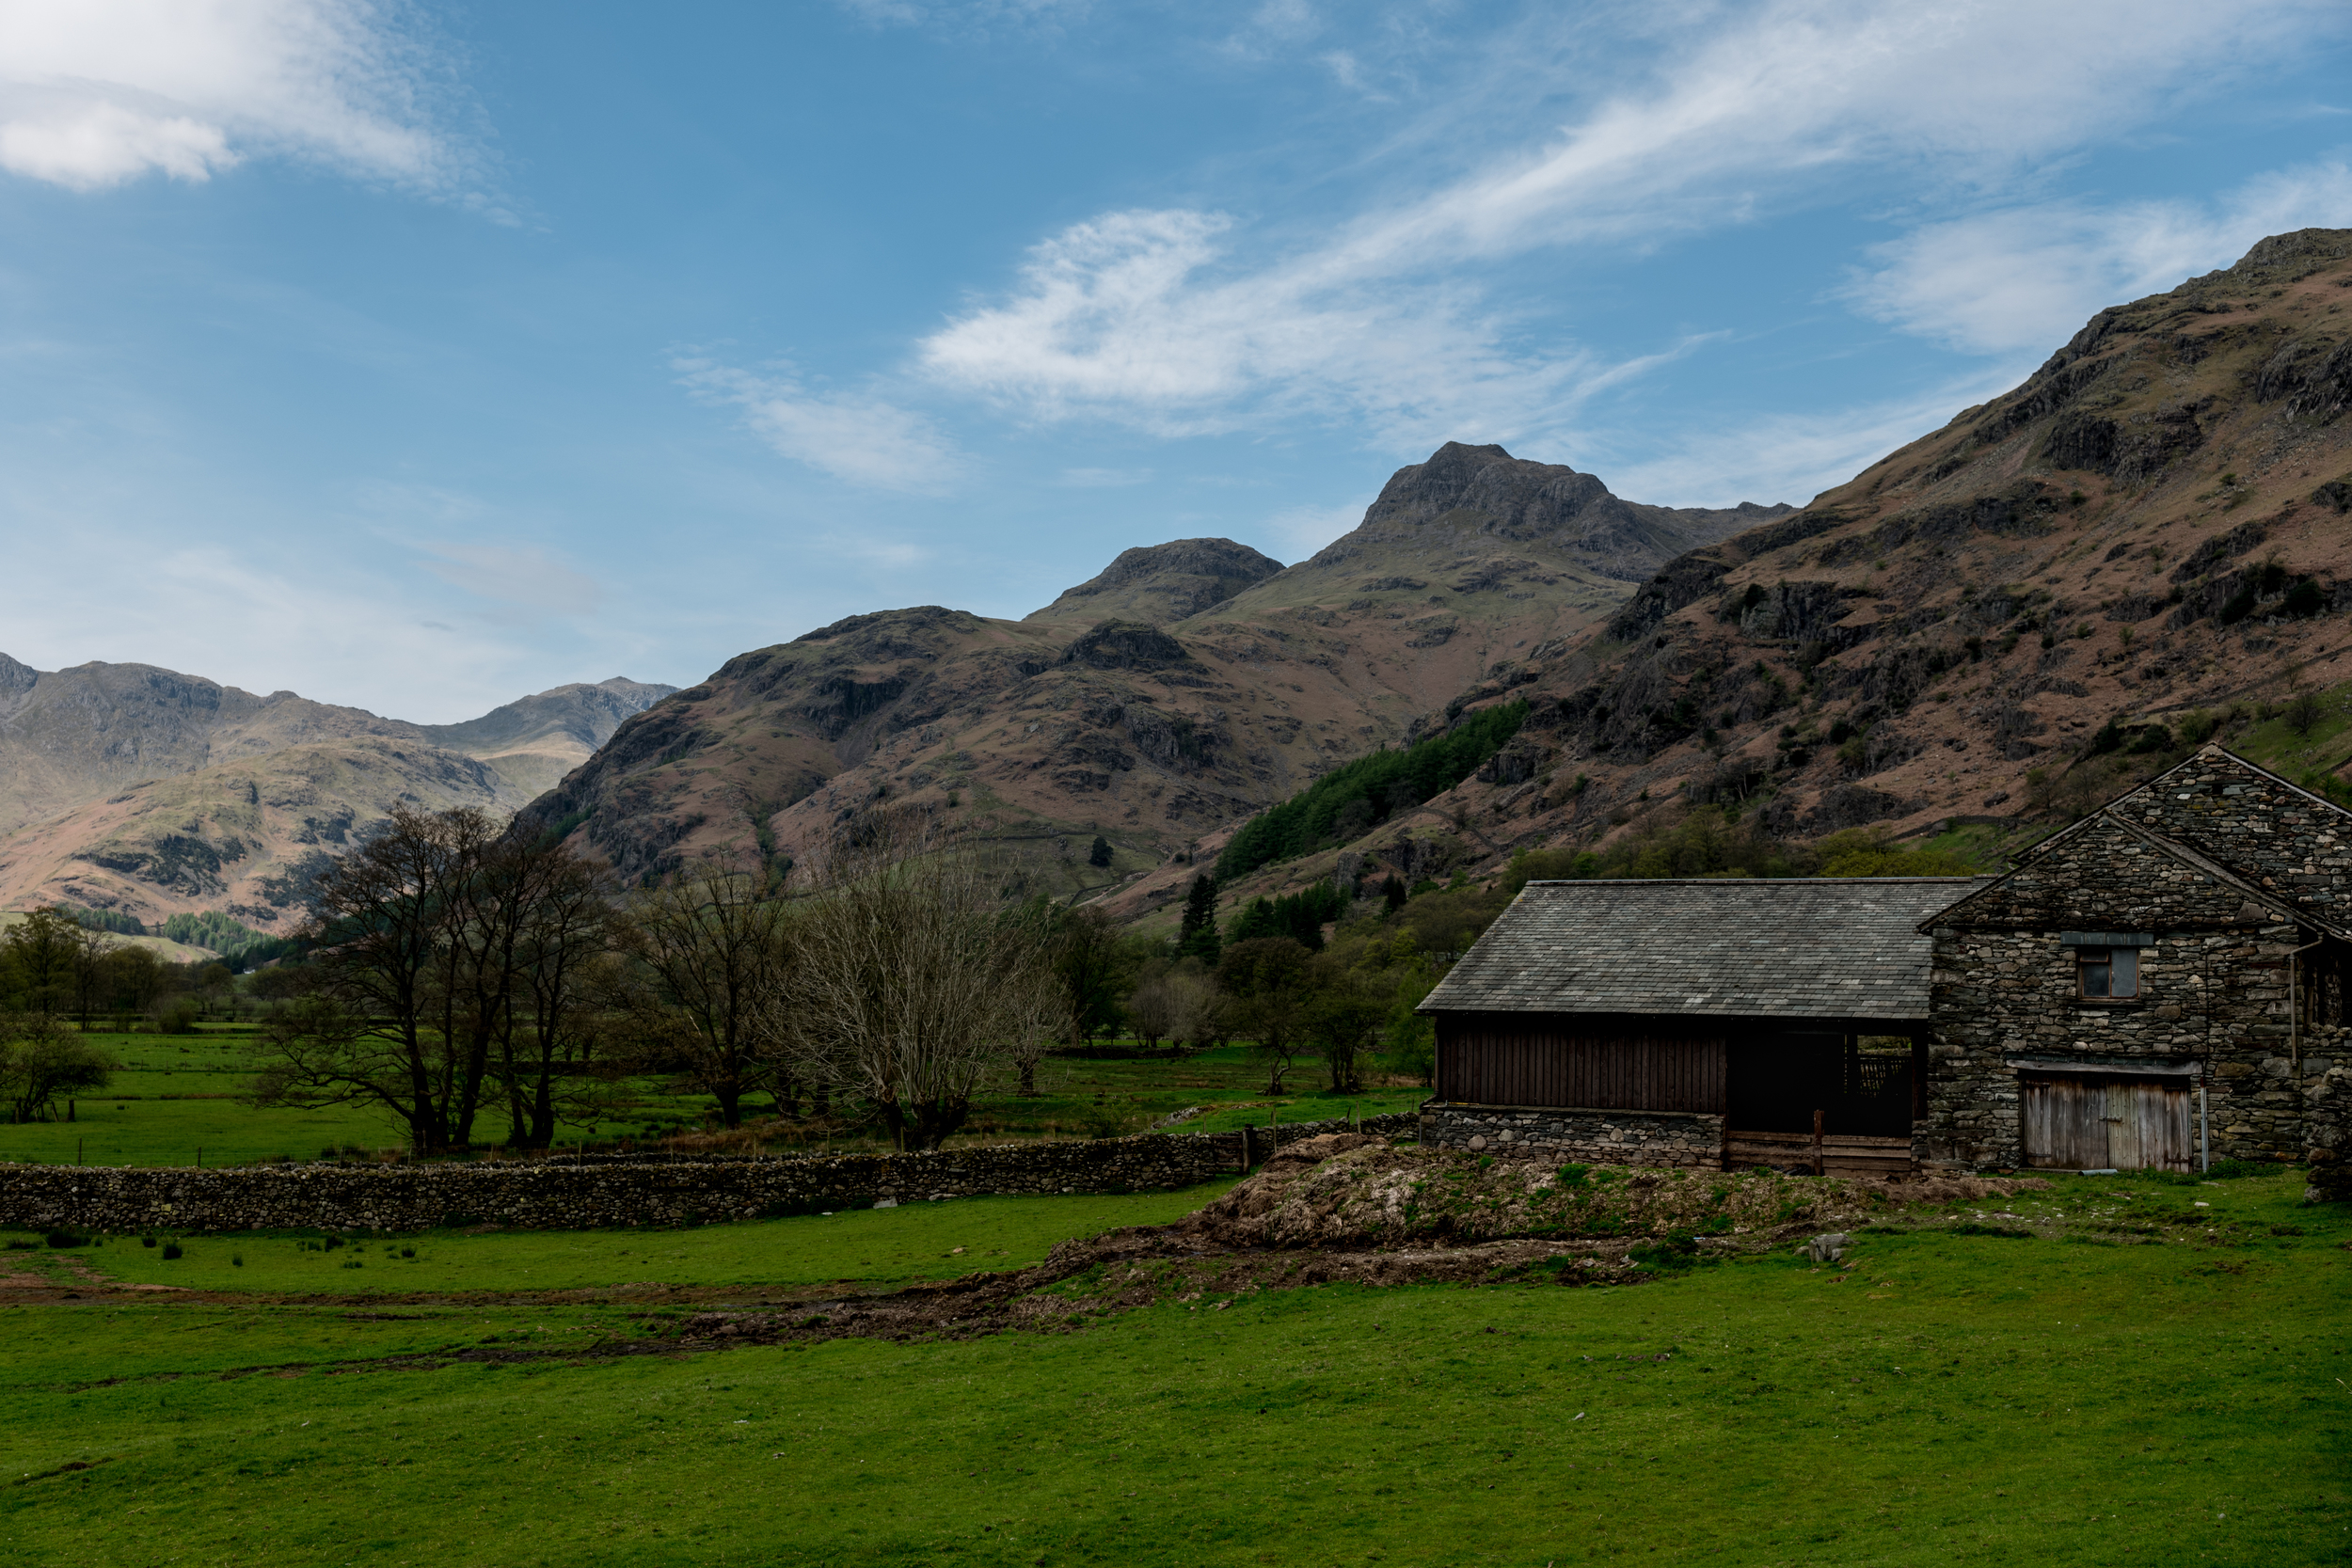 If the goal is vibrant and accurate color rendition, than the Leica SL has you covered. Farmhouse photographed around high noon in the Lake District - no filters. I pulled over on the side of the road to take this photograph. Nothing fancy.